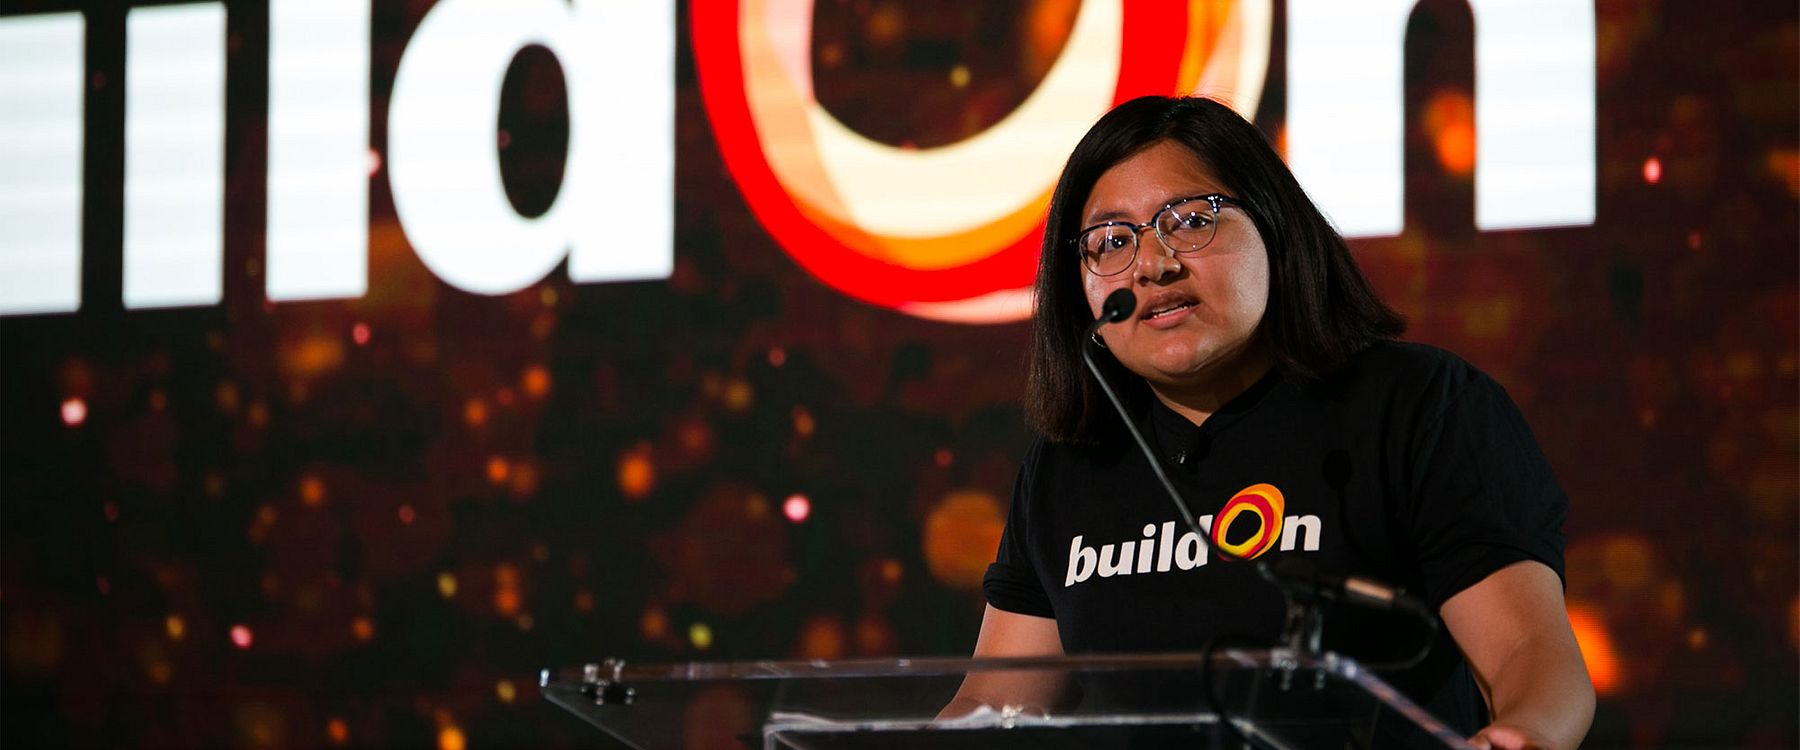 Cris, a buildOn student from Gage Park, shares their story from the stage at the buildOn Chicago Breakfast.